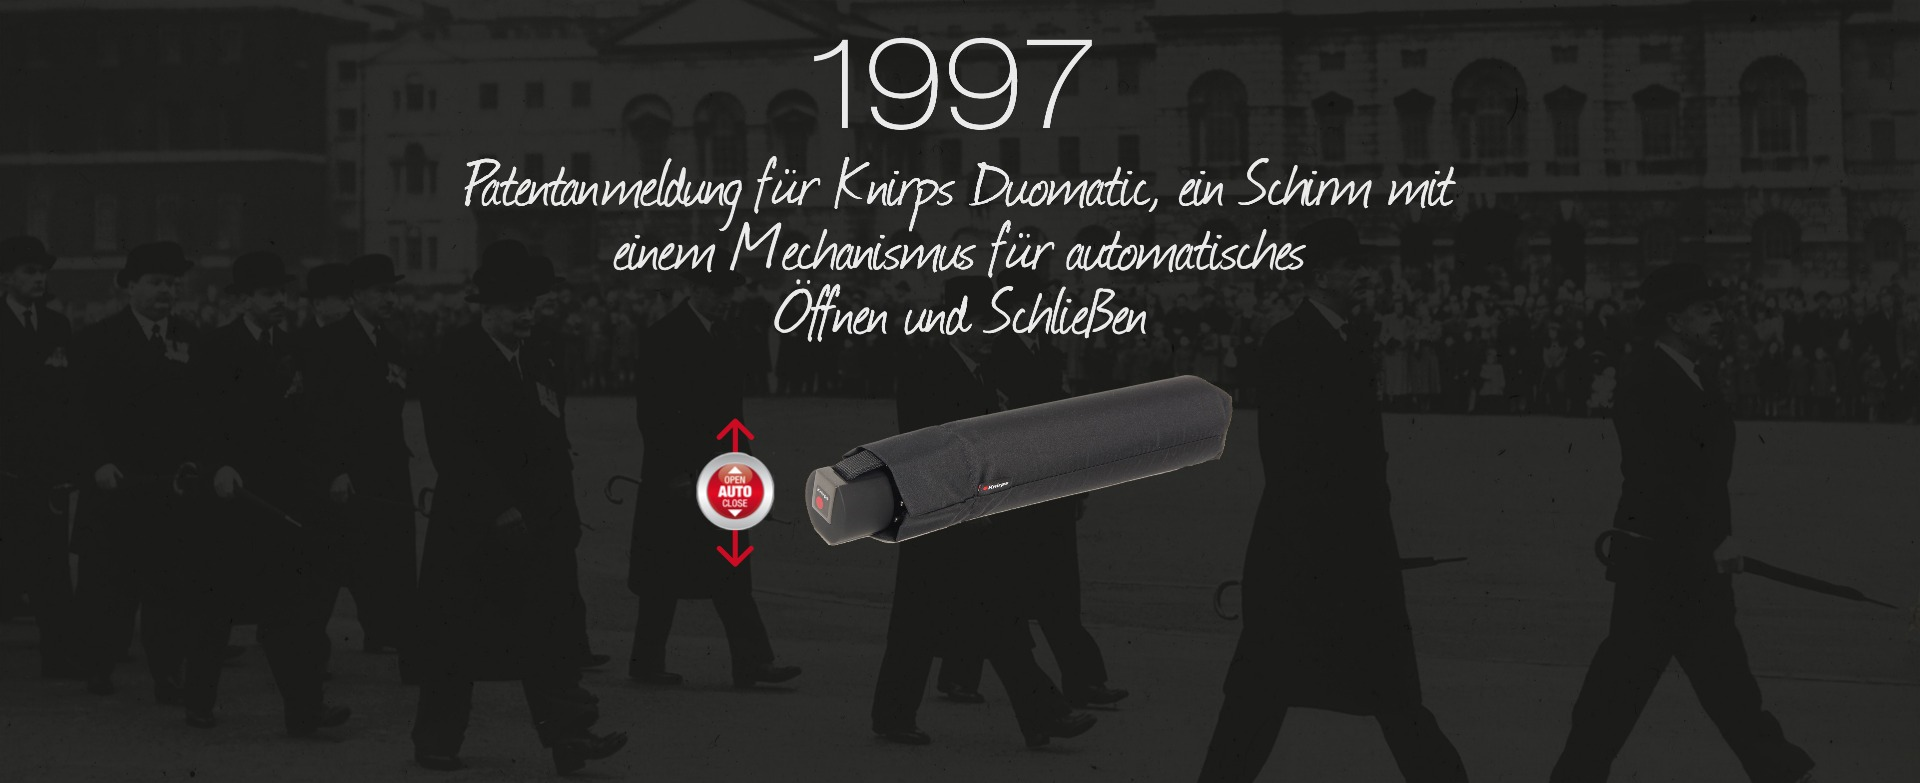 8_1997_duomatic-knirps